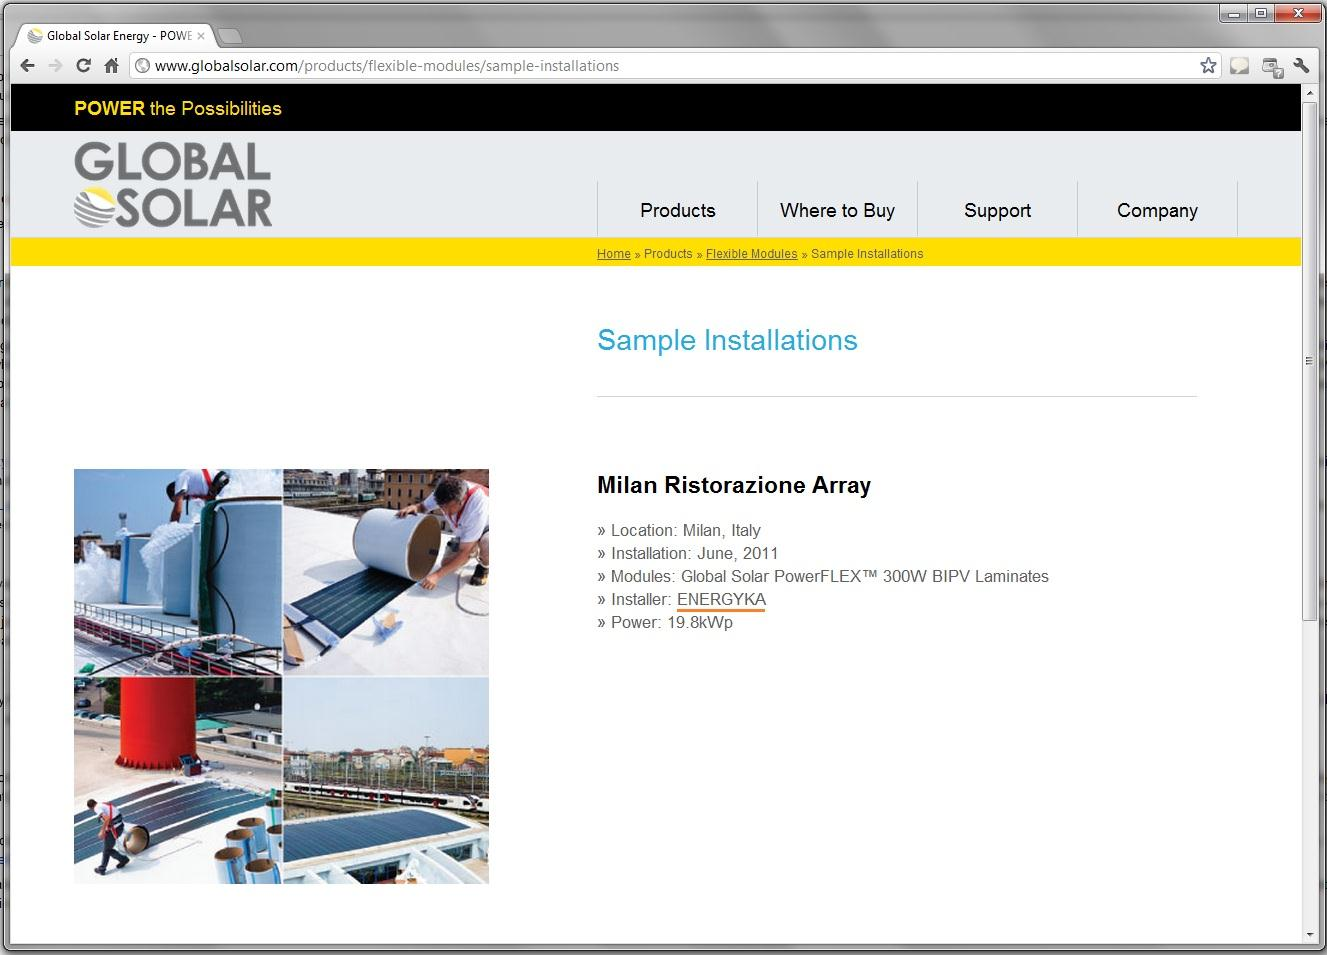 innovativi ufficiale Global Solar : www.